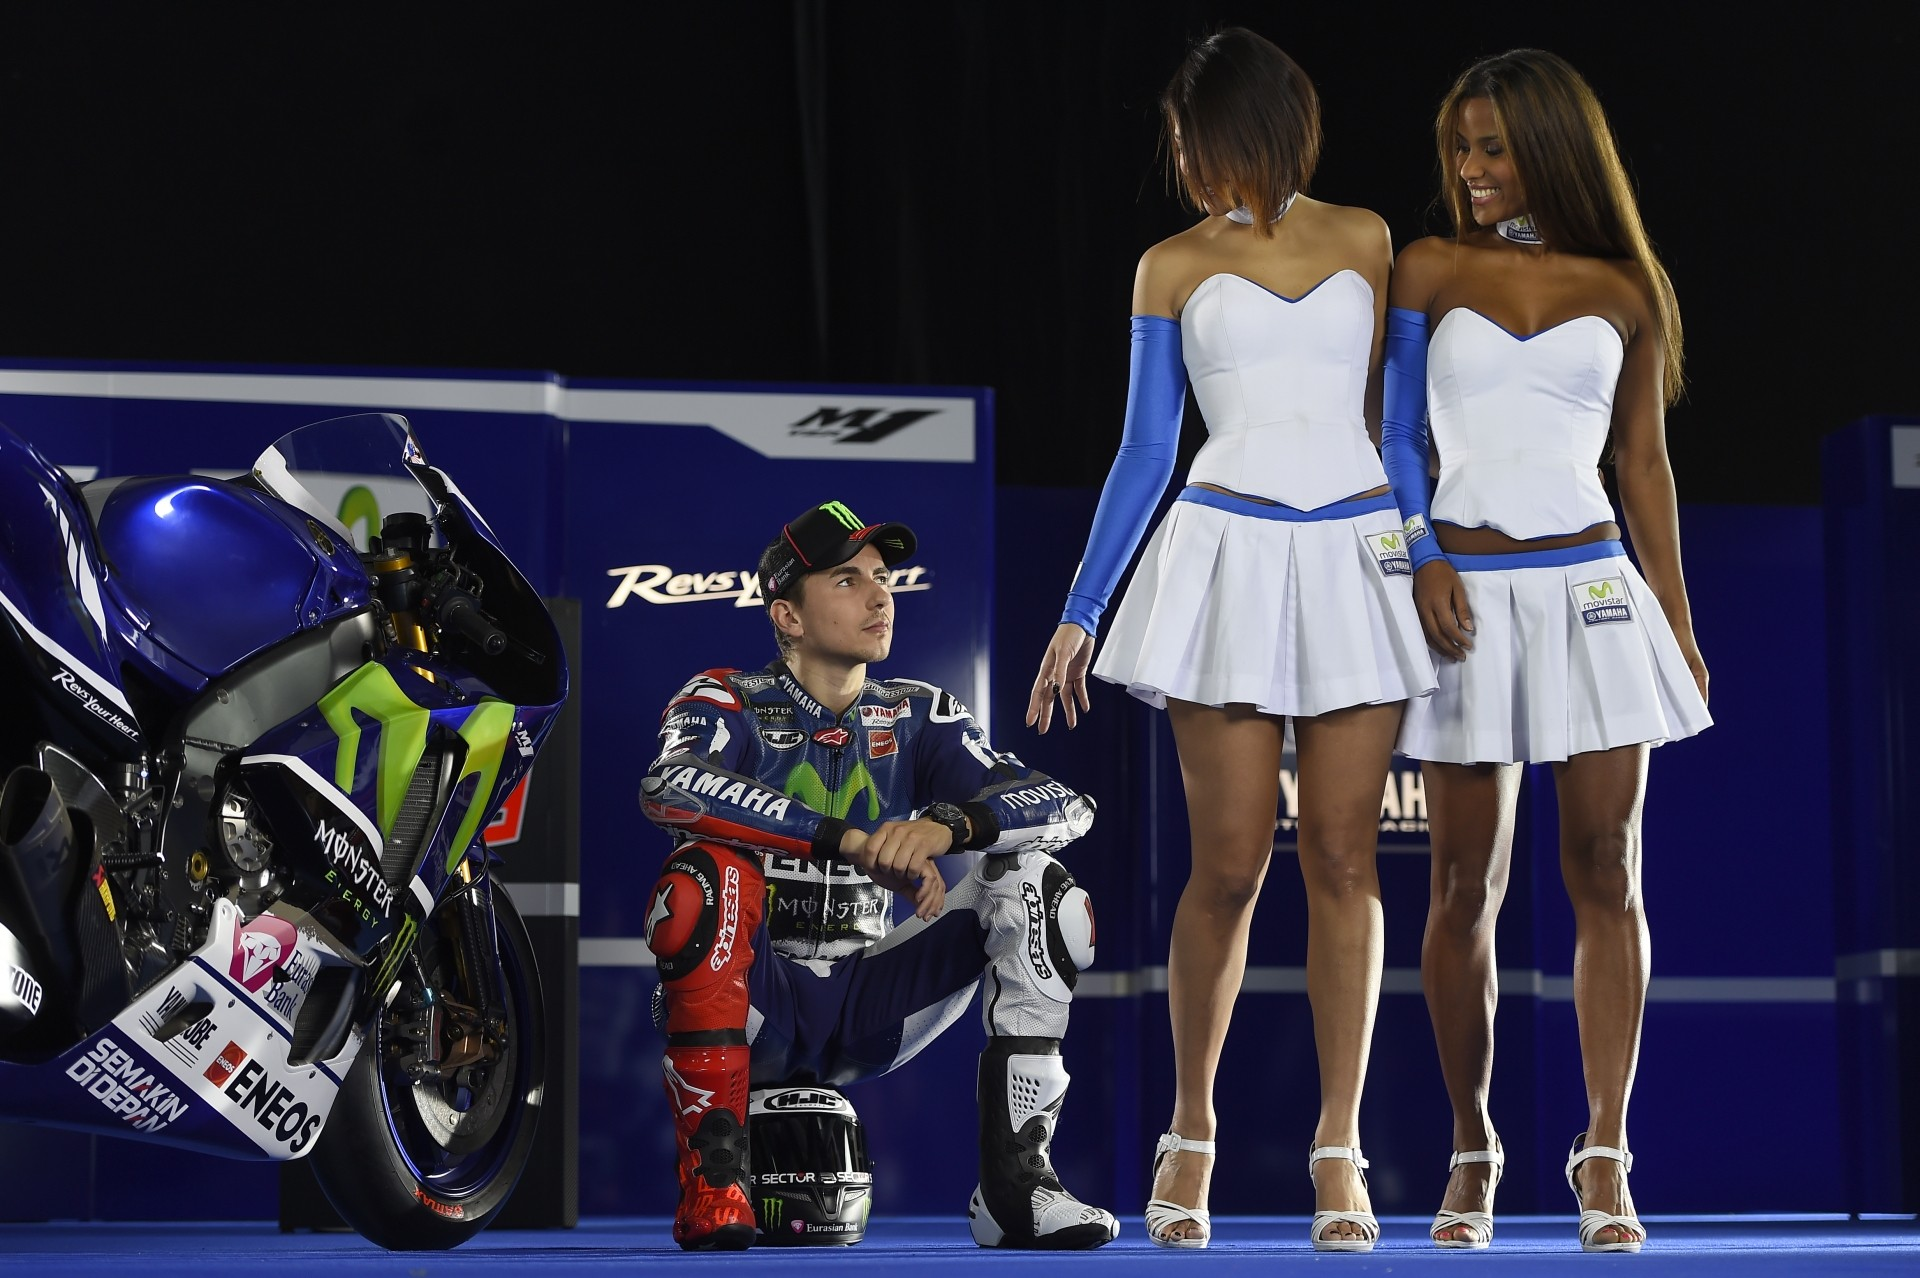 Valentino Rossi, Jorge Lorenzo, the Models, an Abarth and Yamaha M1 Close-Ups - autoevolution